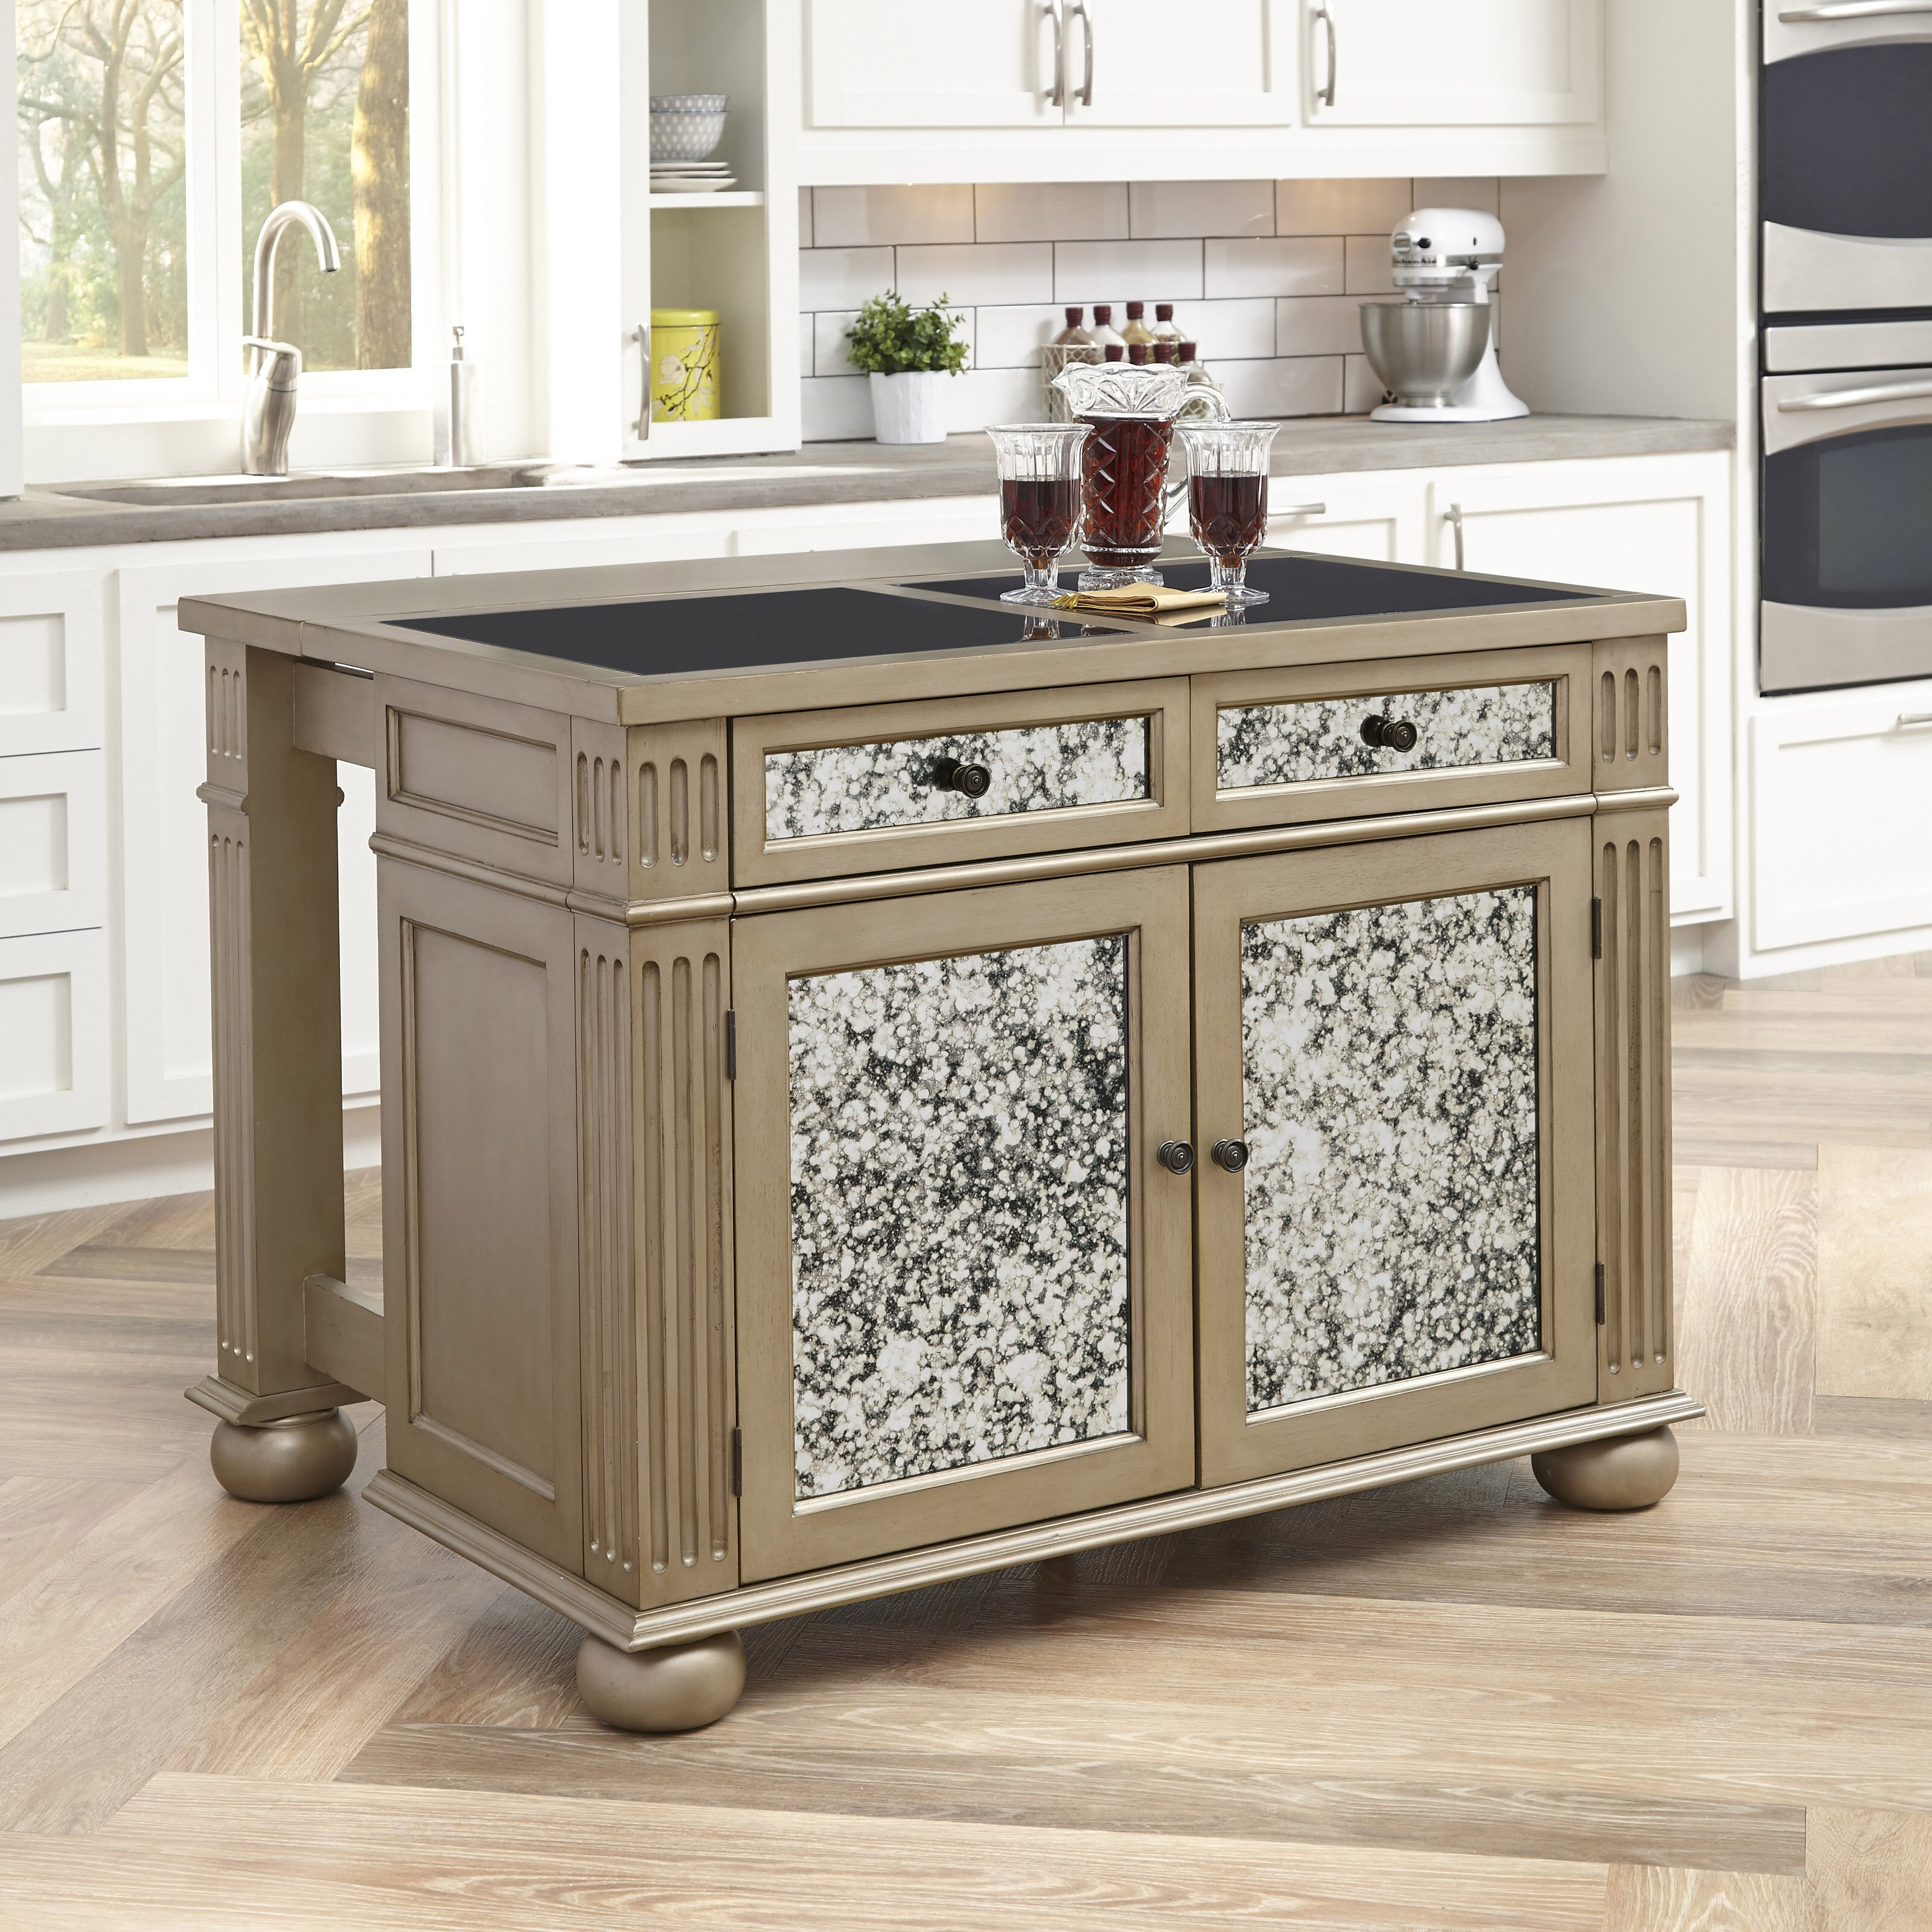 Granite Top Kitchen Granite Kitchen Islands Carts Youll Love Wayfair